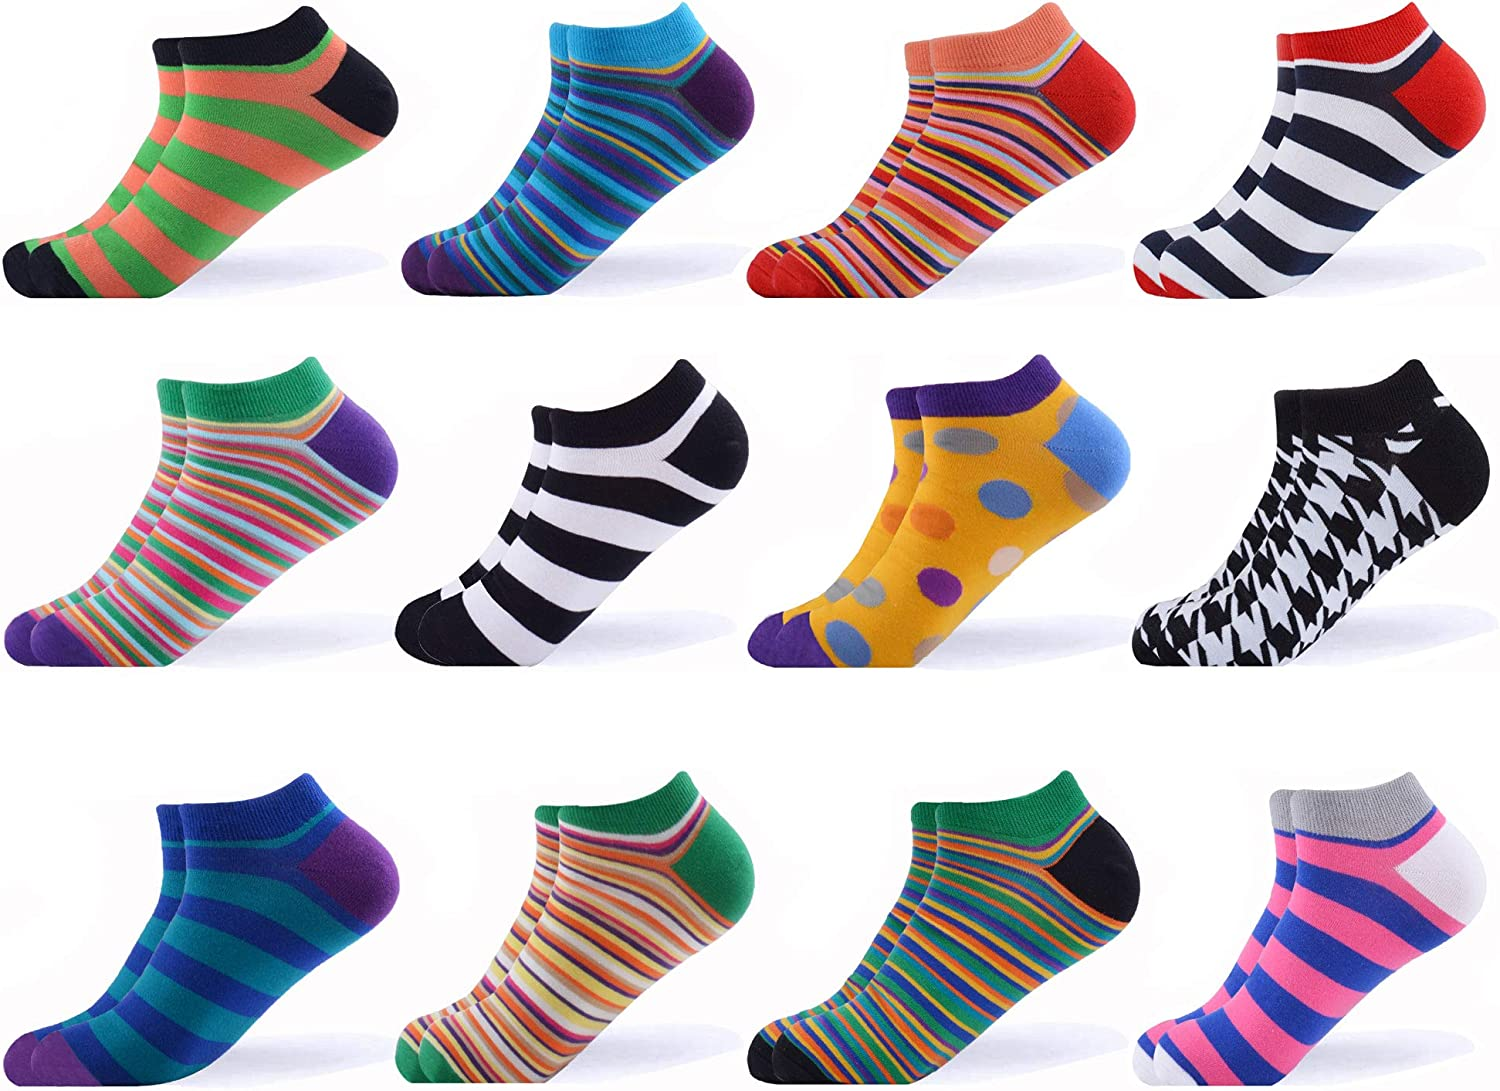 WeciBor Mens Dress Cool Colorful Novelty Funny Casual Combed Cotton Socks Pack